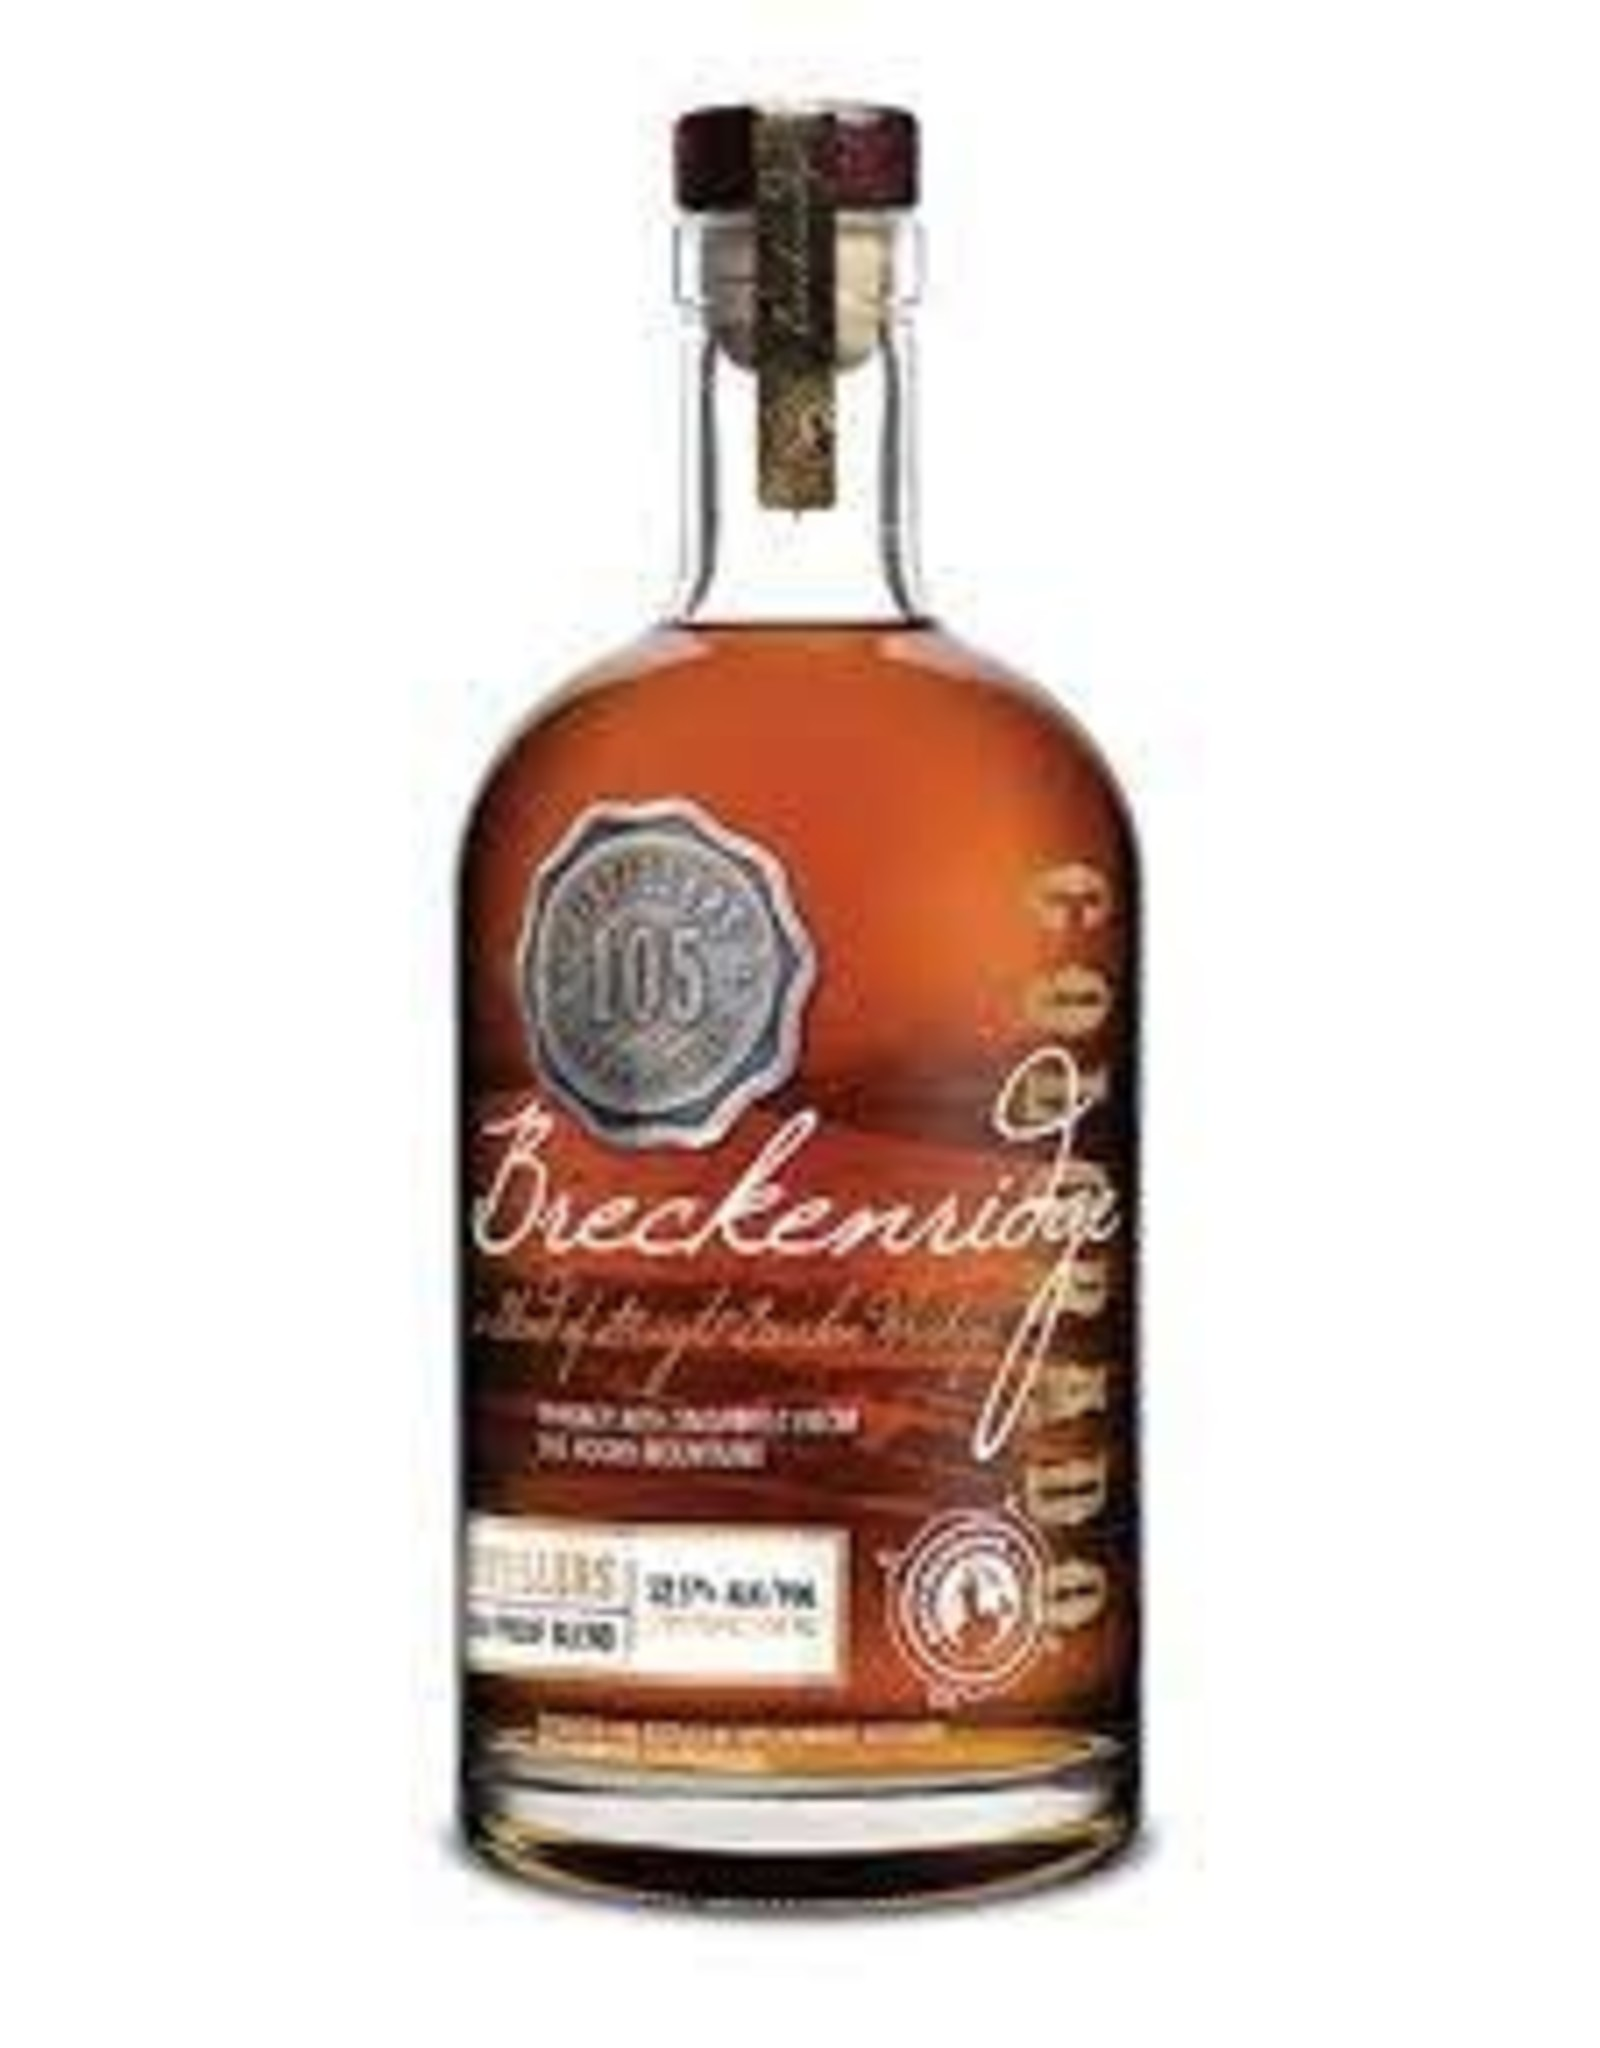 BRECKENRIDGE HIGH PROOF 105